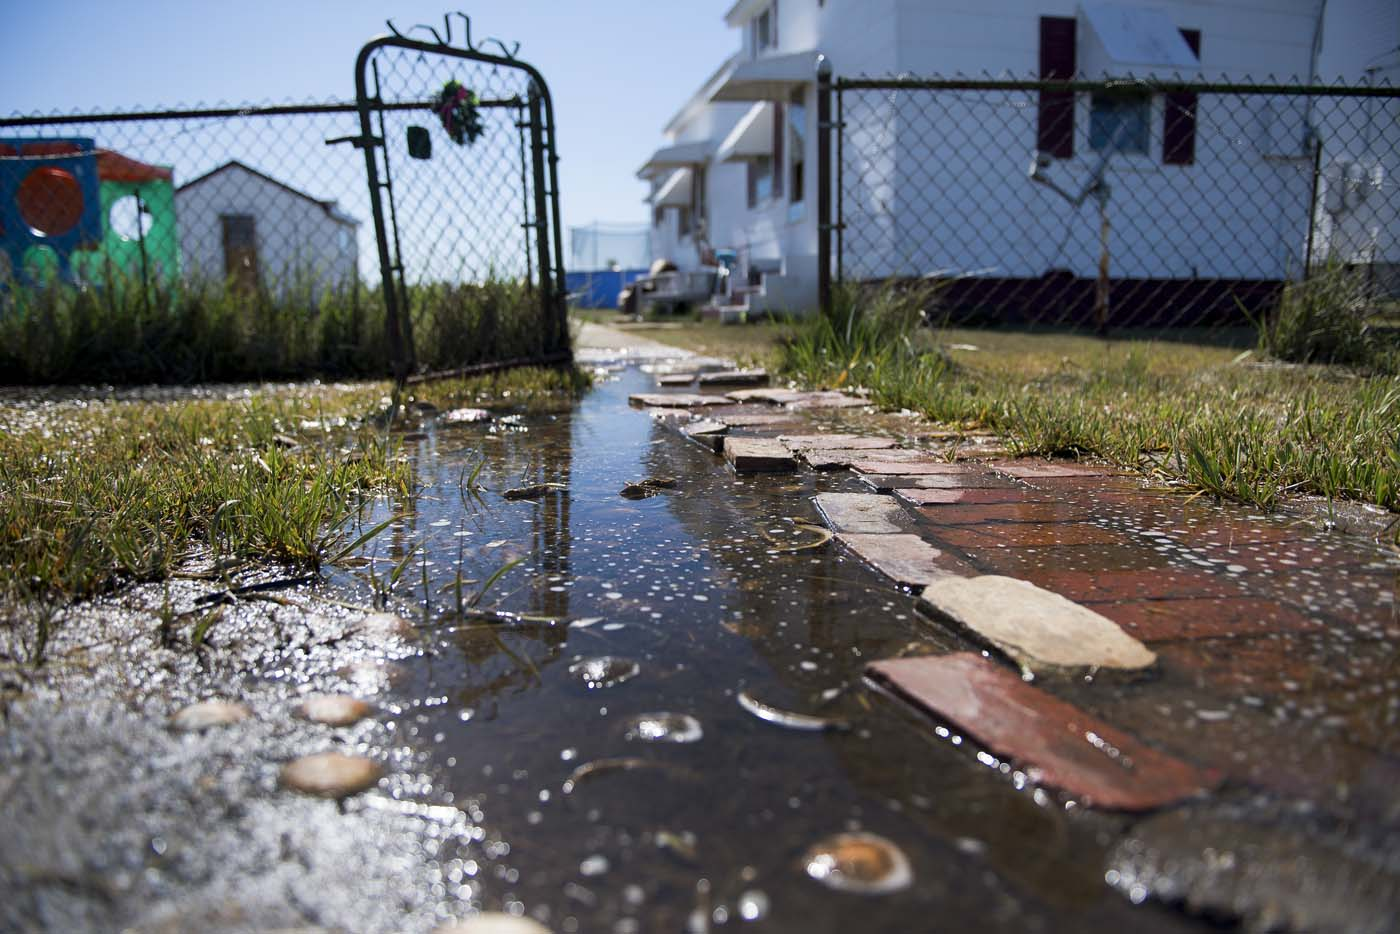 Sea water collects on the front walk way of a home in Tangier, Virginia, May 15, 2017, where climate change and rising sea levels threaten the inhabitants of the slowly sinking island. Now measuring 1.2 square miles, Tangier Island has lost two-thirds of its landmass since 1850. If nothing is done to stop the erosion, it may disappear completely in the next 40 years. / AFP PHOTO / JIM WATSON